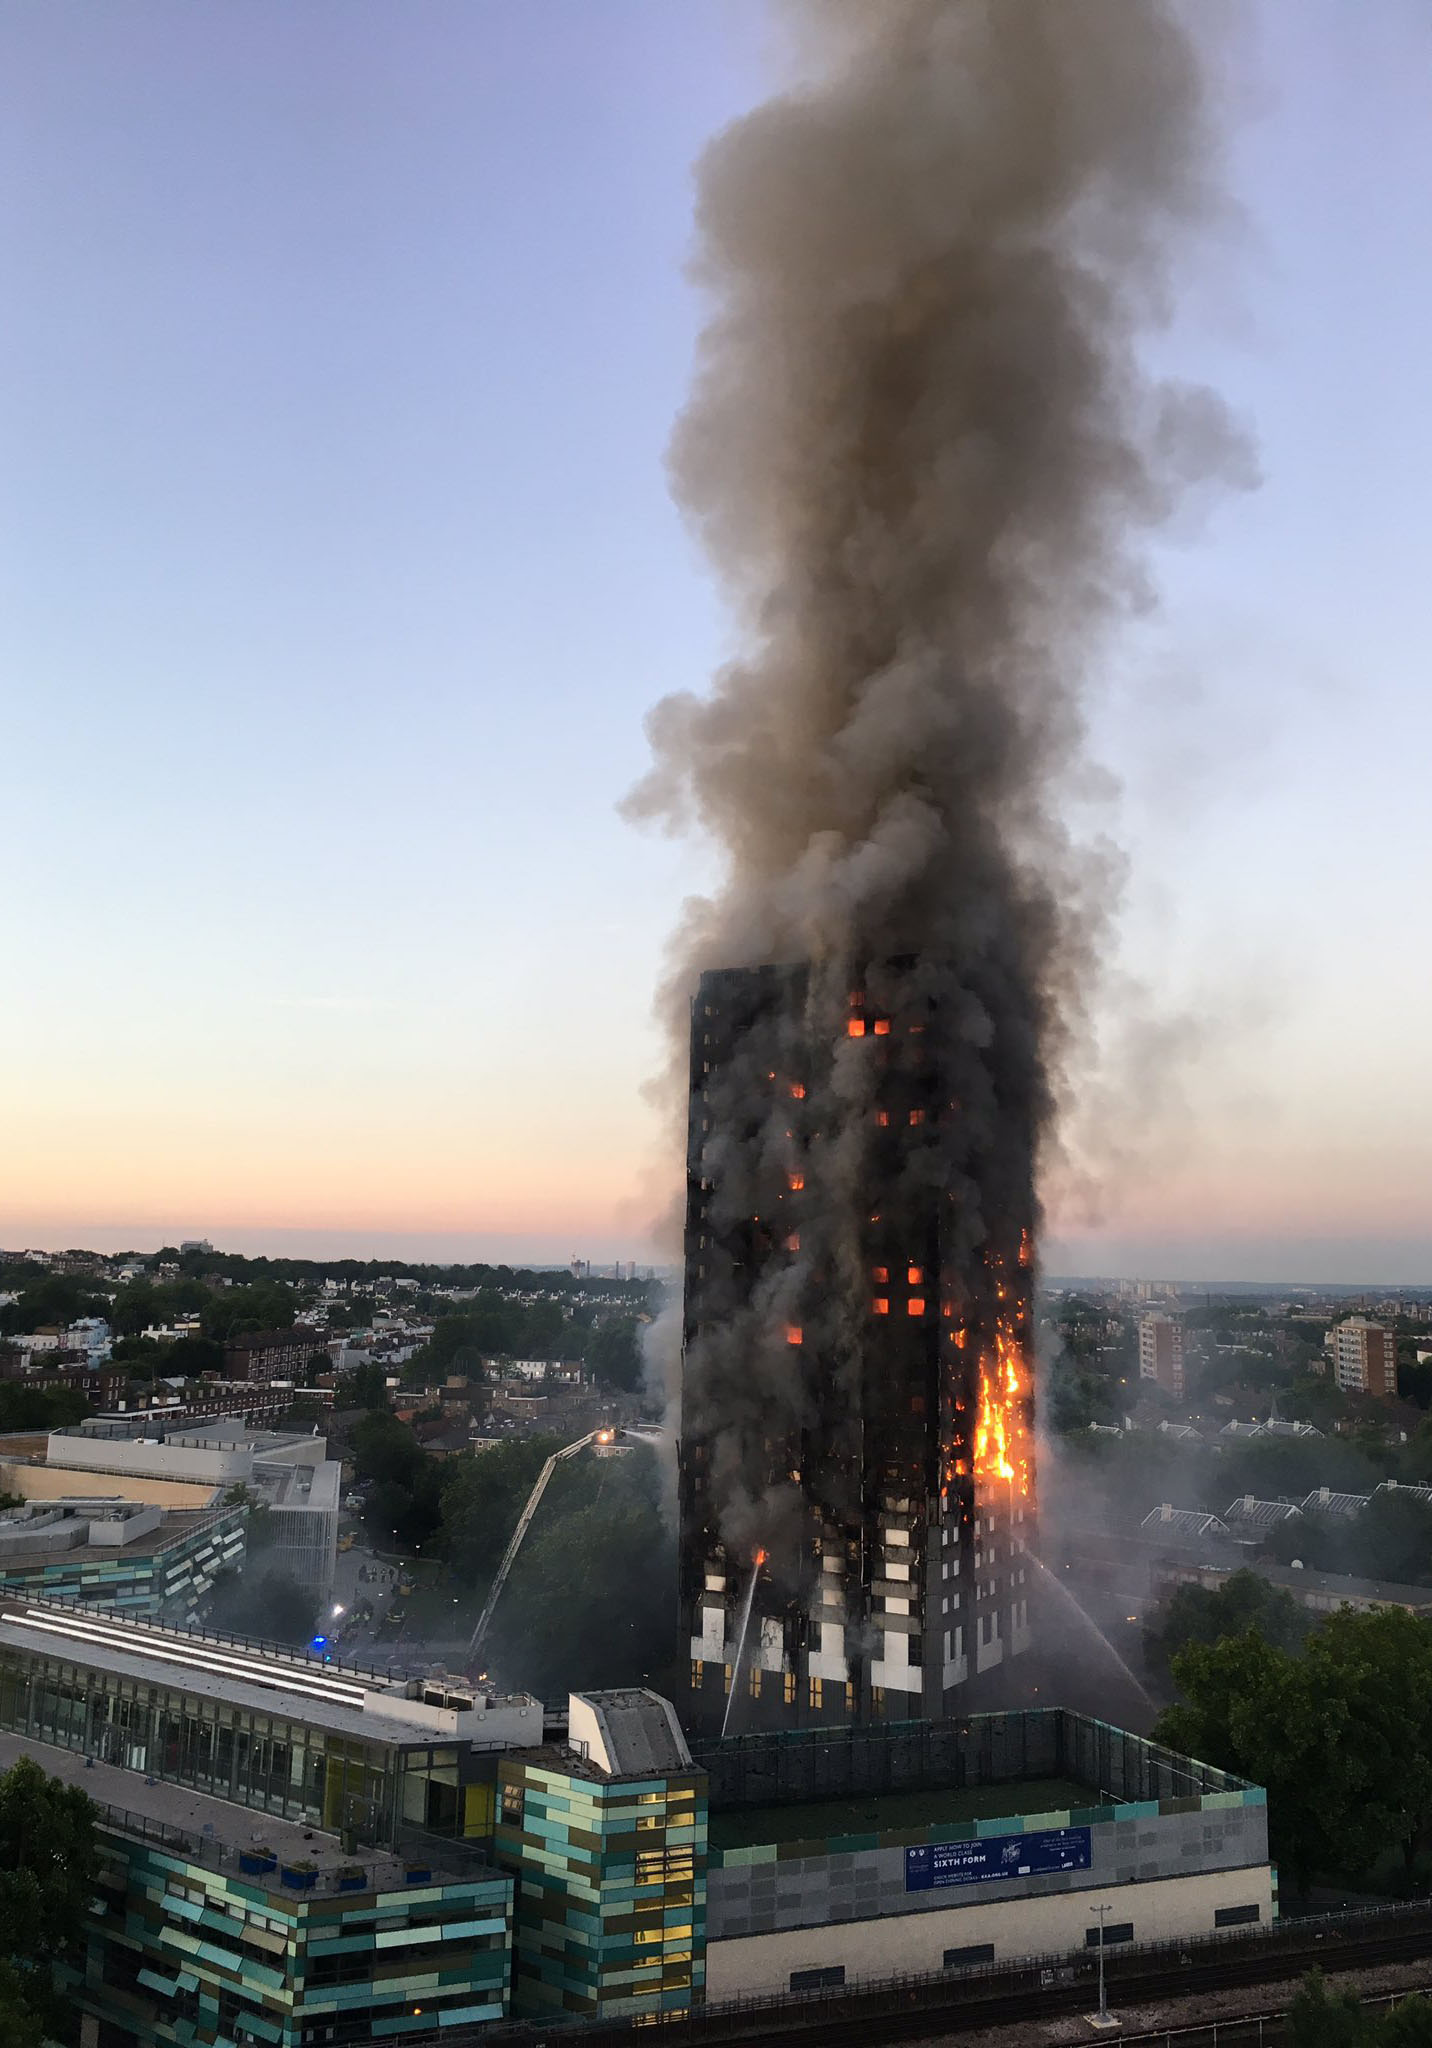 The highrise fire at Greenfel Tower in 2017 contained large amounts of toxins which exposed unprotected firefighters during the aftermaths of the fire. Photo: Wikipedia